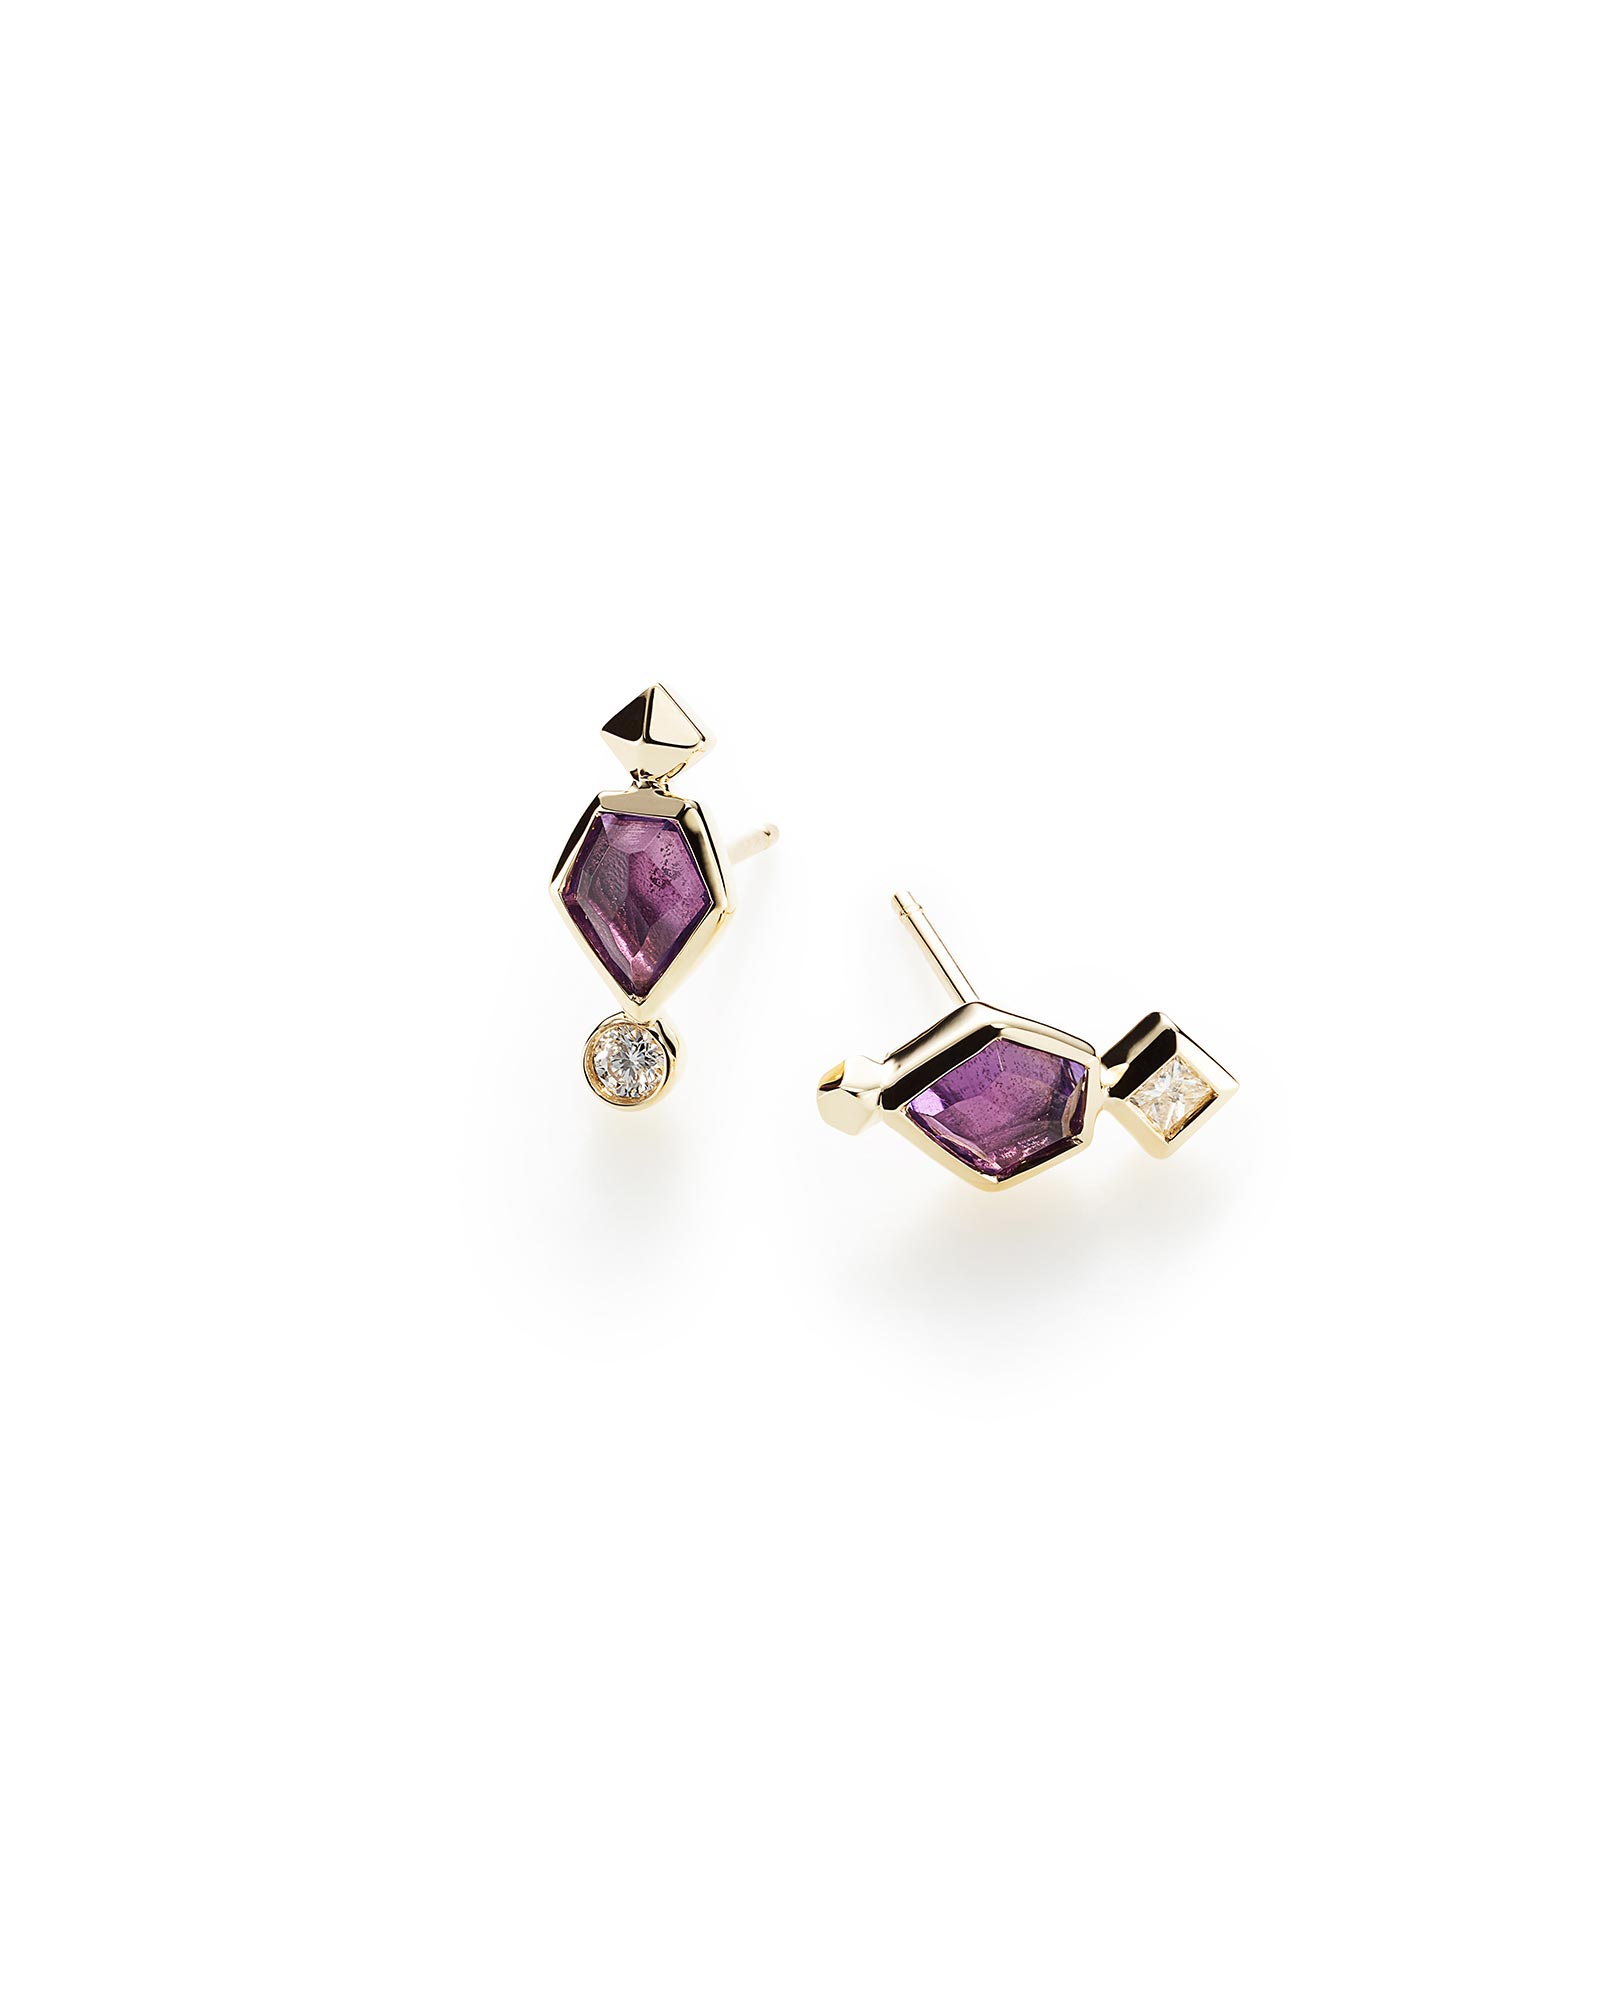 Bonnie Stud Earrings in Amethyst and 14k Yellow Gold